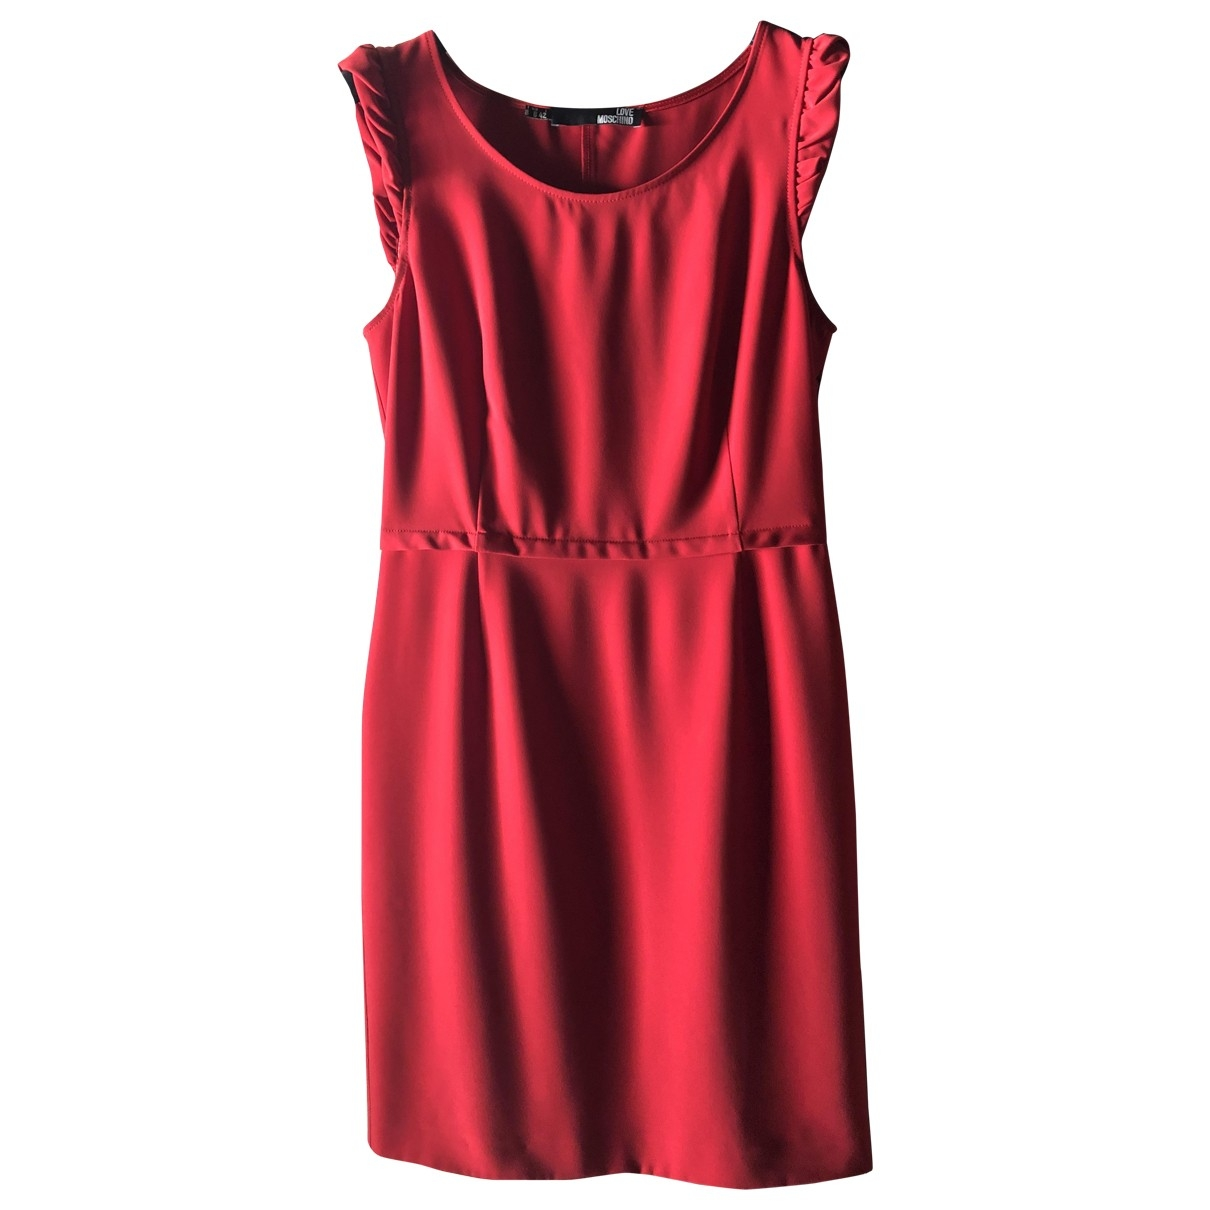 Moschino Love \N Red dress for Women 42 IT